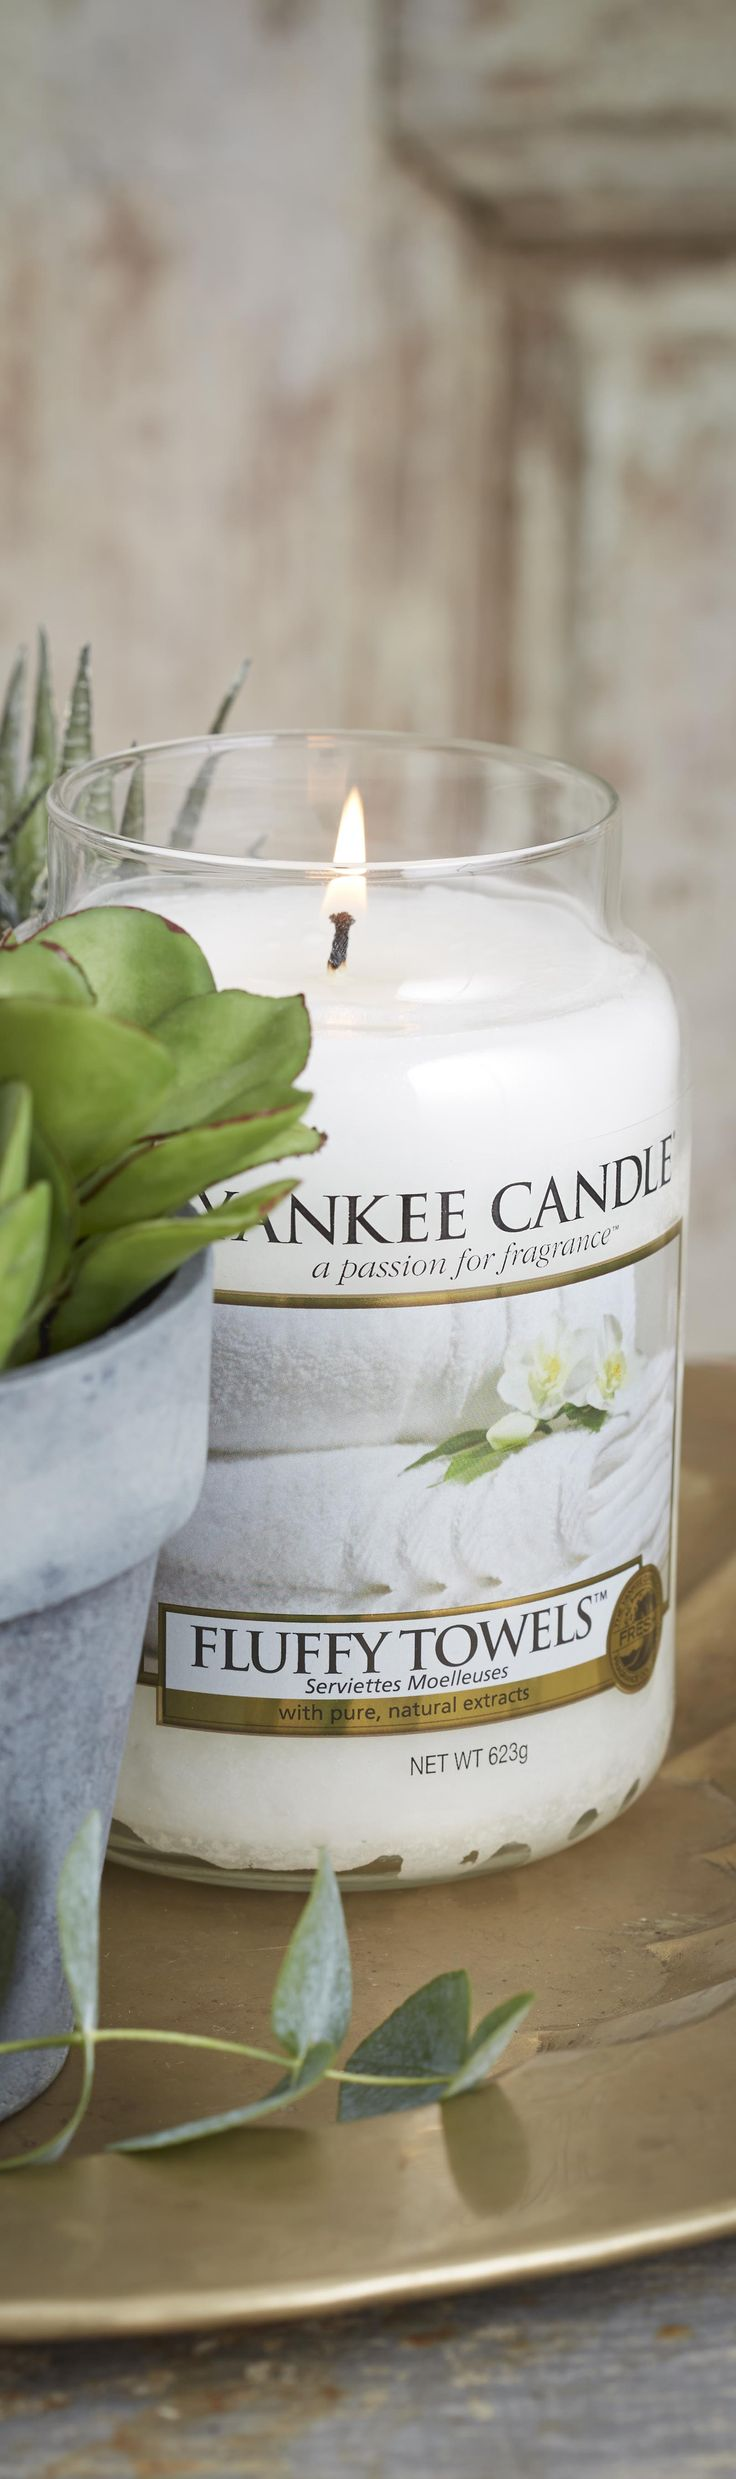 33 best Yankee Candle Wedding Day images on Pinterest